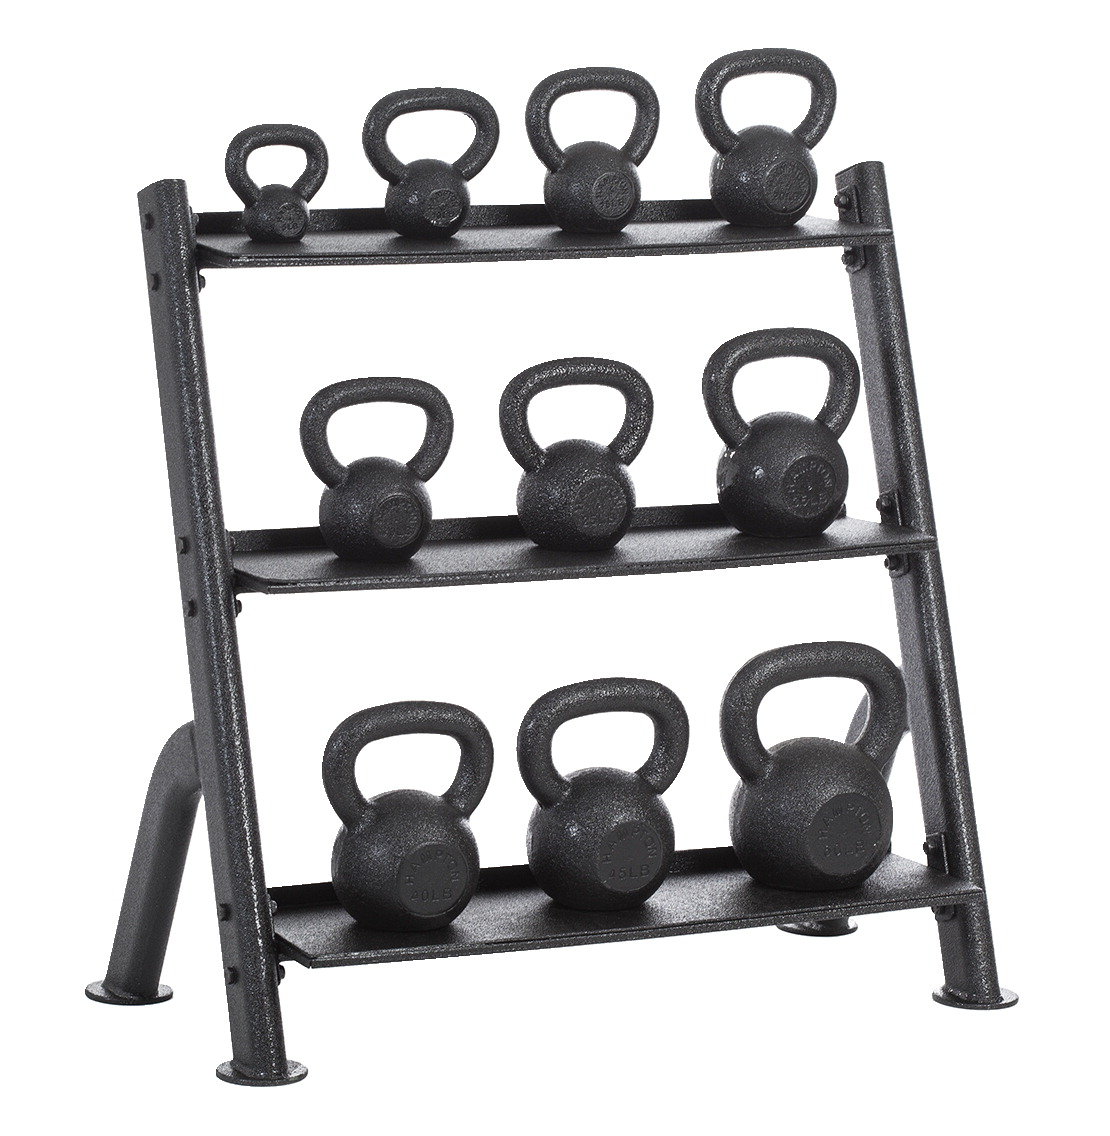 Hampton Fitness Urethane Coated KettleBells, Set of 10